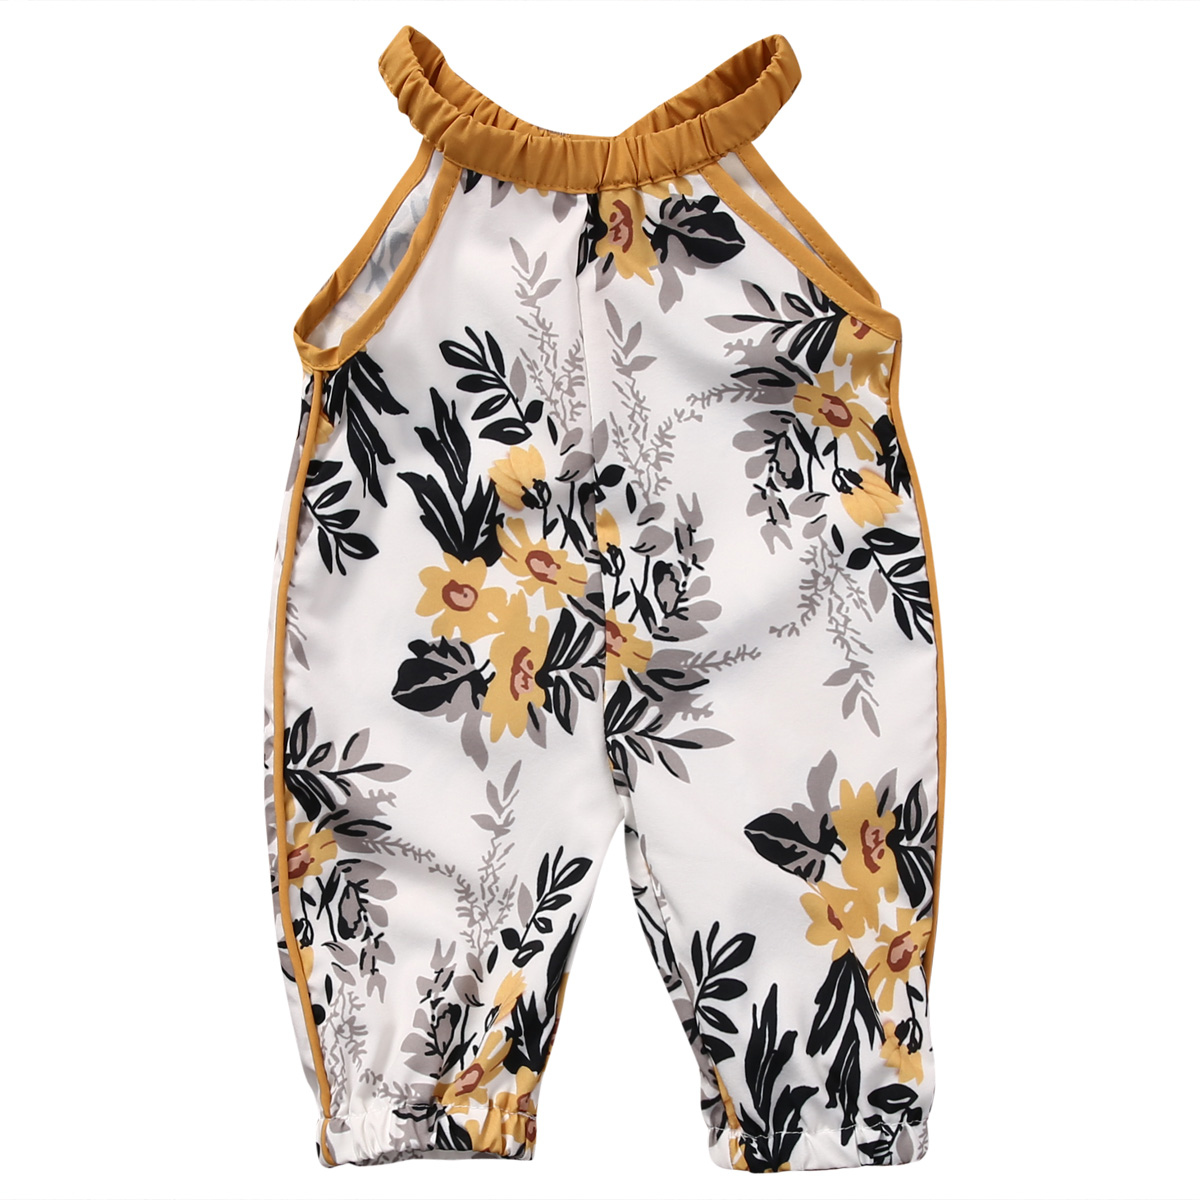 Newborn Toddler Baby Girls Rompers Sleeveless Floral Jumpsuit Clothes Sunflower Summer Outfits